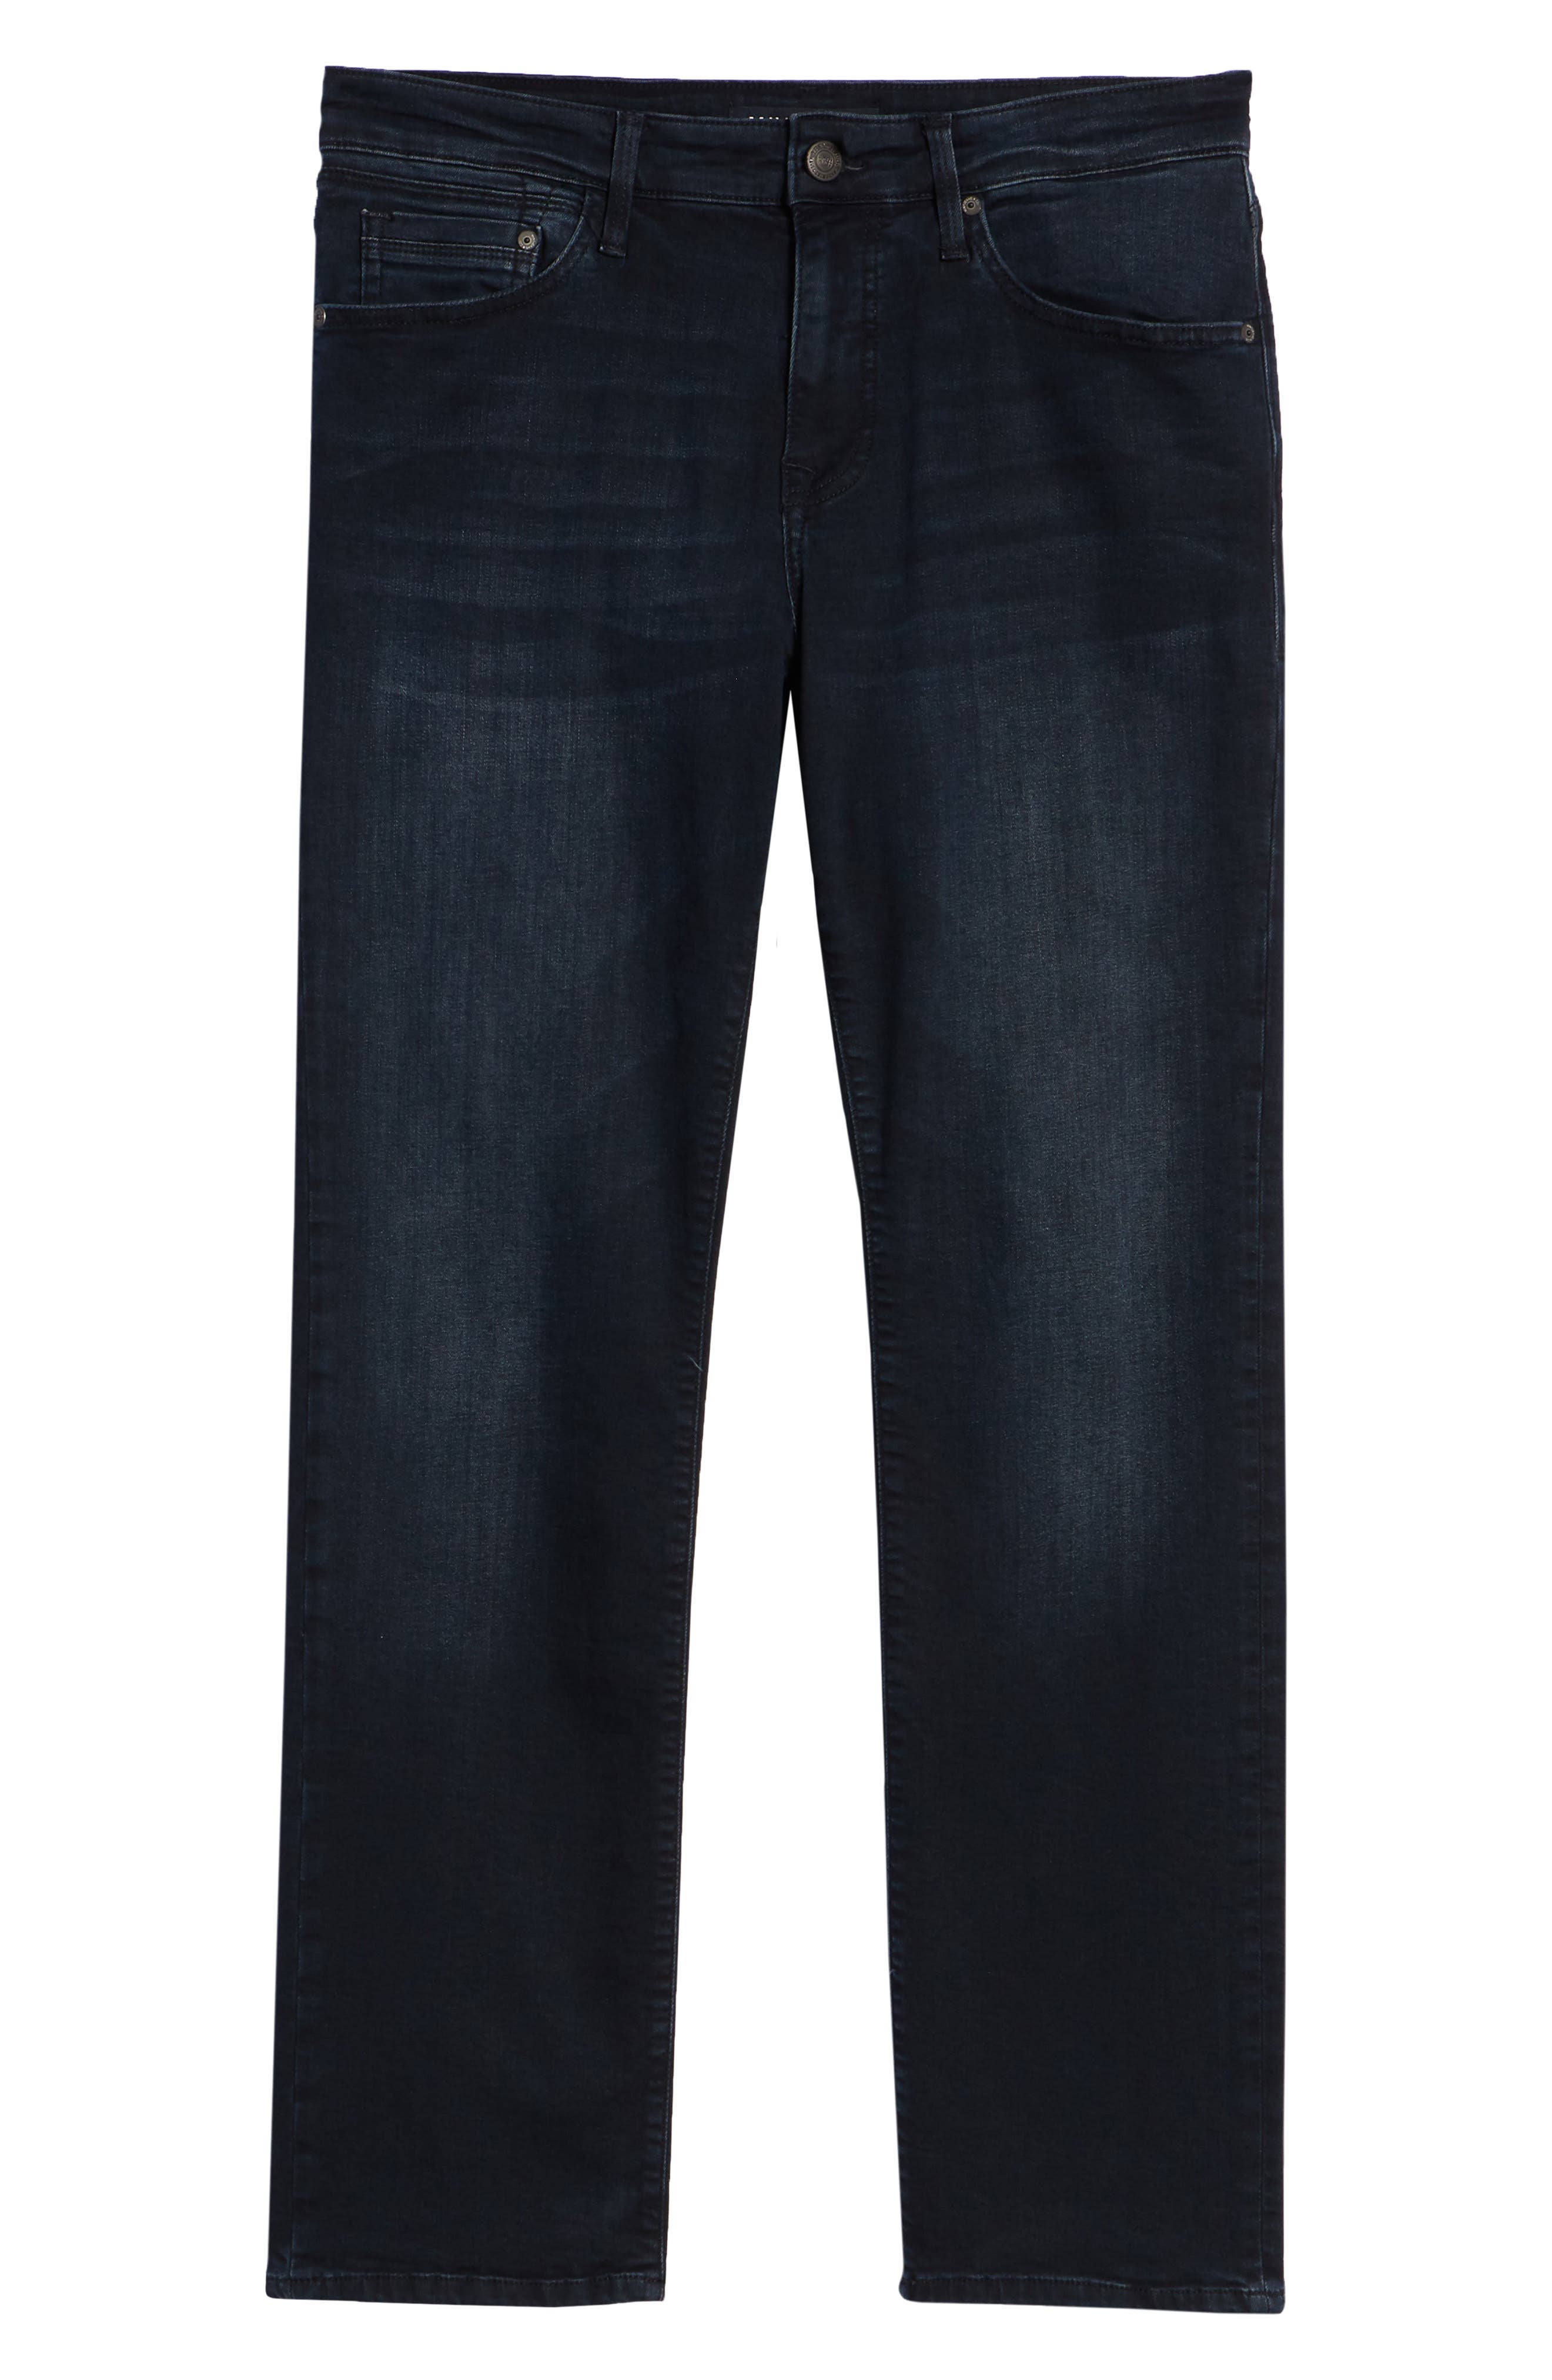 Matt Relaxed Fit Jeans,                             Alternate thumbnail 6, color,                             401